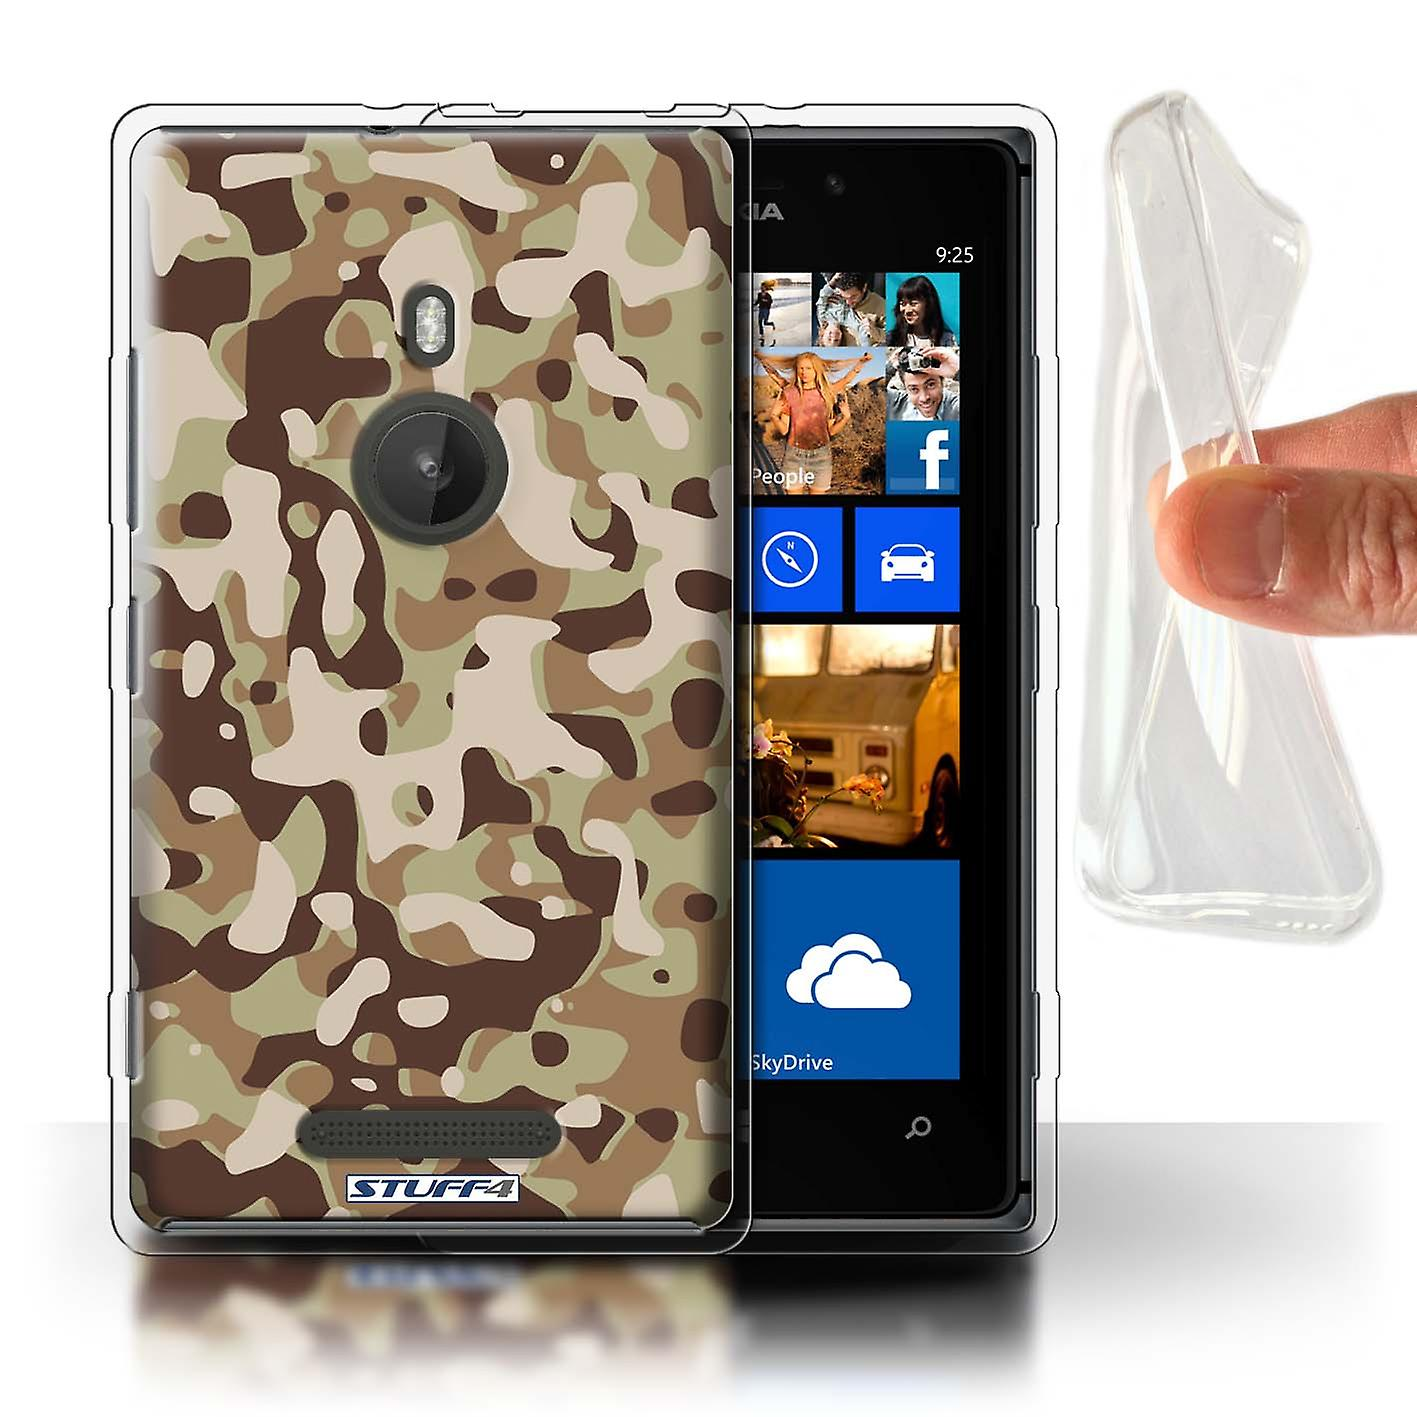 STUFF4 Gel TPU Case/Cover for Nokia Lumia 925/Brown 3/Camouflage Army Navy